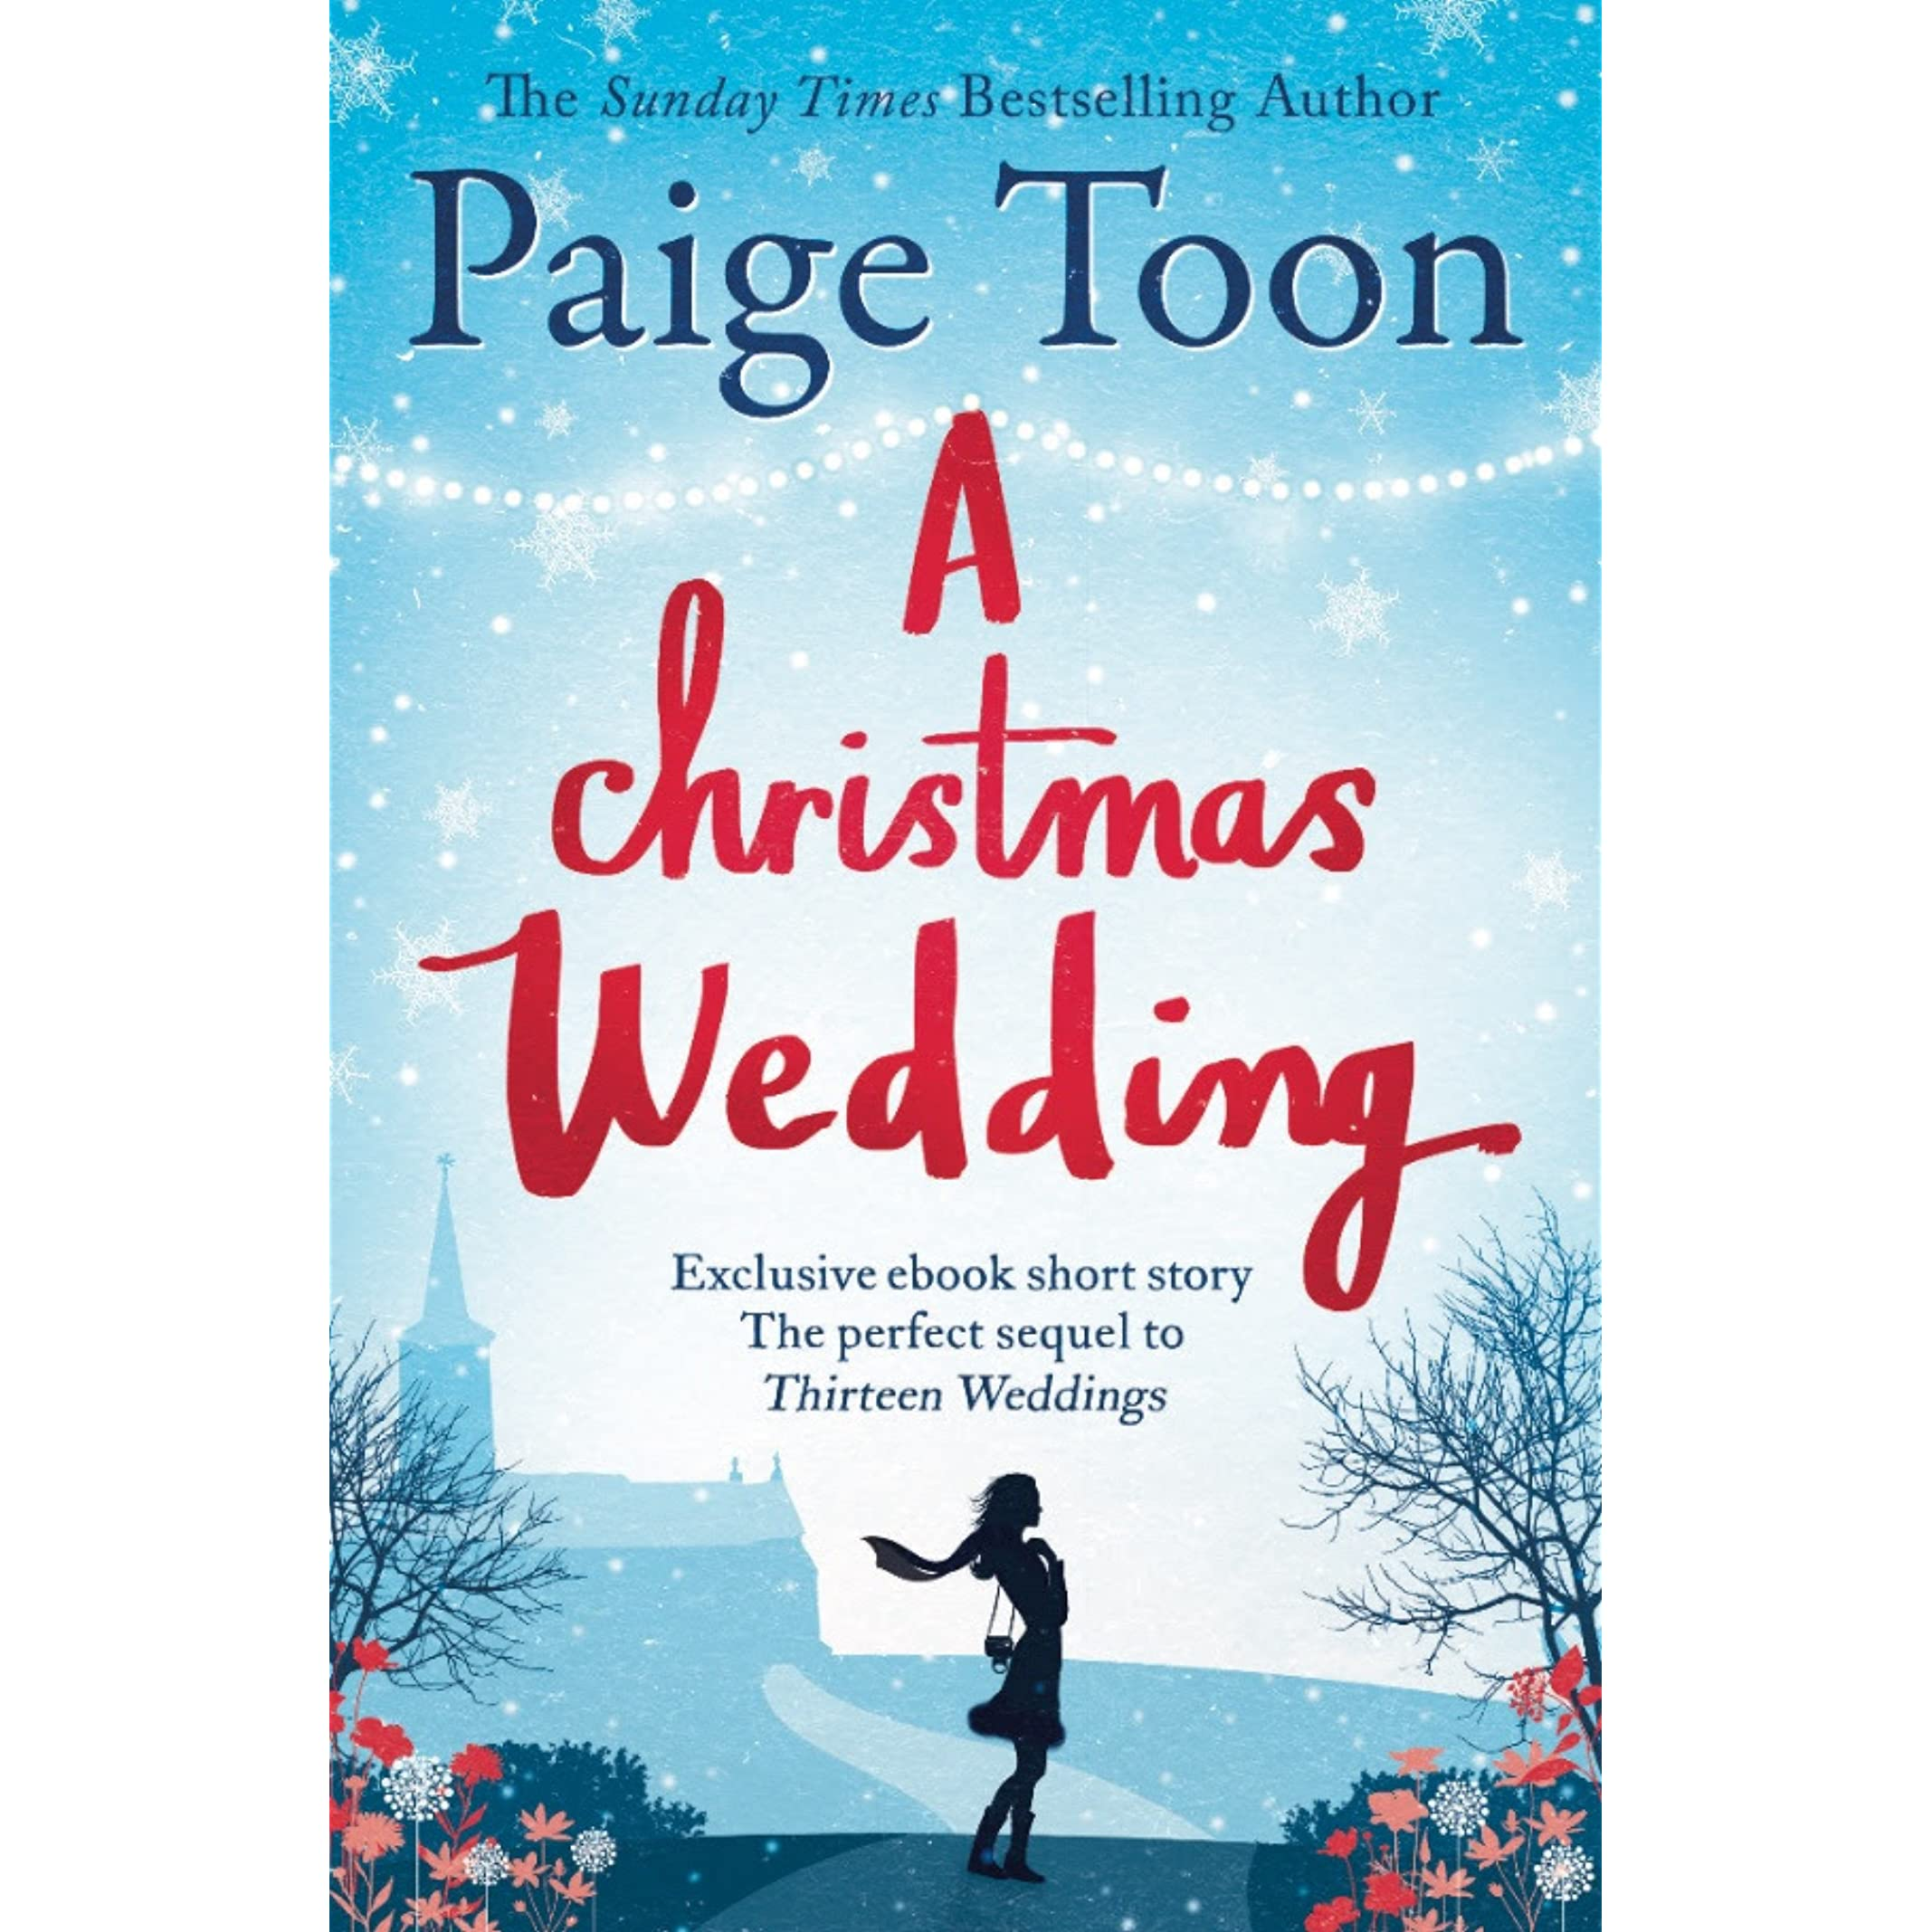 A Christmas Story Sequel.A Christmas Wedding By Paige Toon